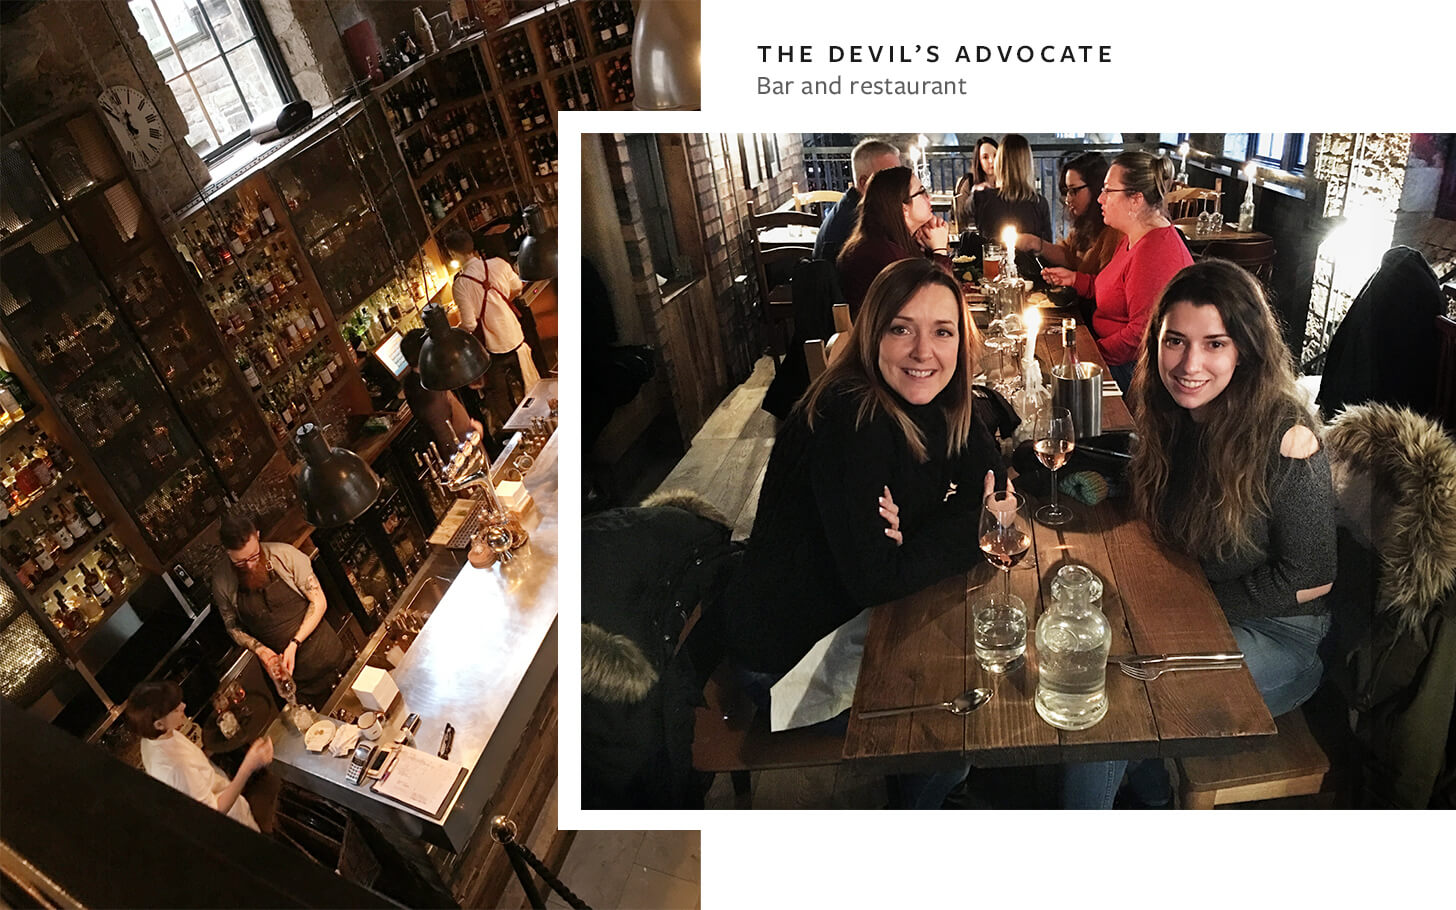 The Devil's Advocate, Edinburgh